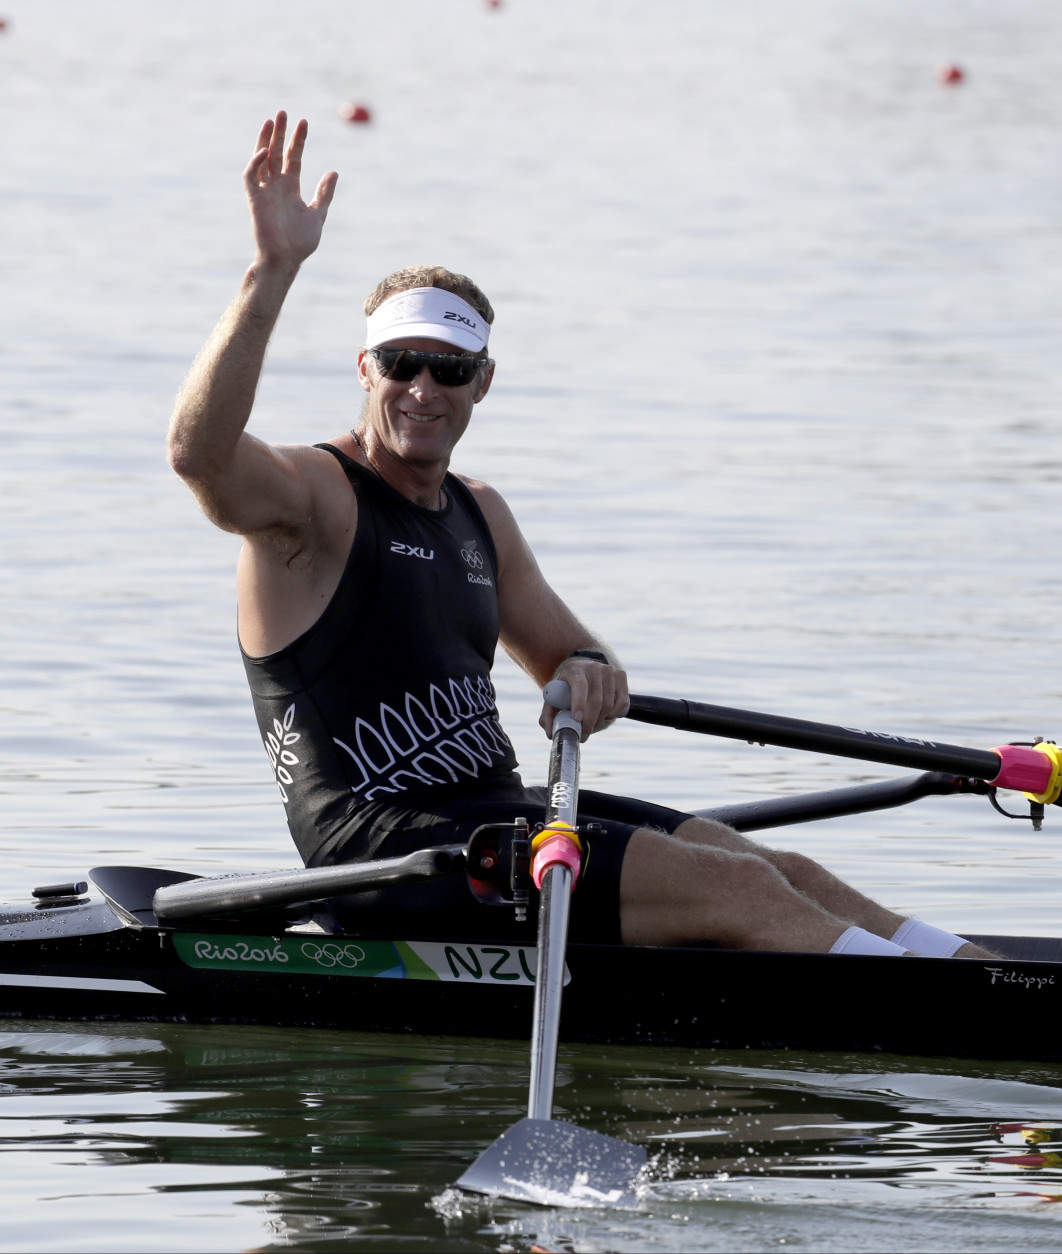 Mahe Drysdale, of New Zealand, waves after competing in the men's single scull heat during the 2016 Summer Olympics in Rio de Janeiro, Brazil, Saturday, Aug. 6, 2016. (AP Photo/Andre Penner)